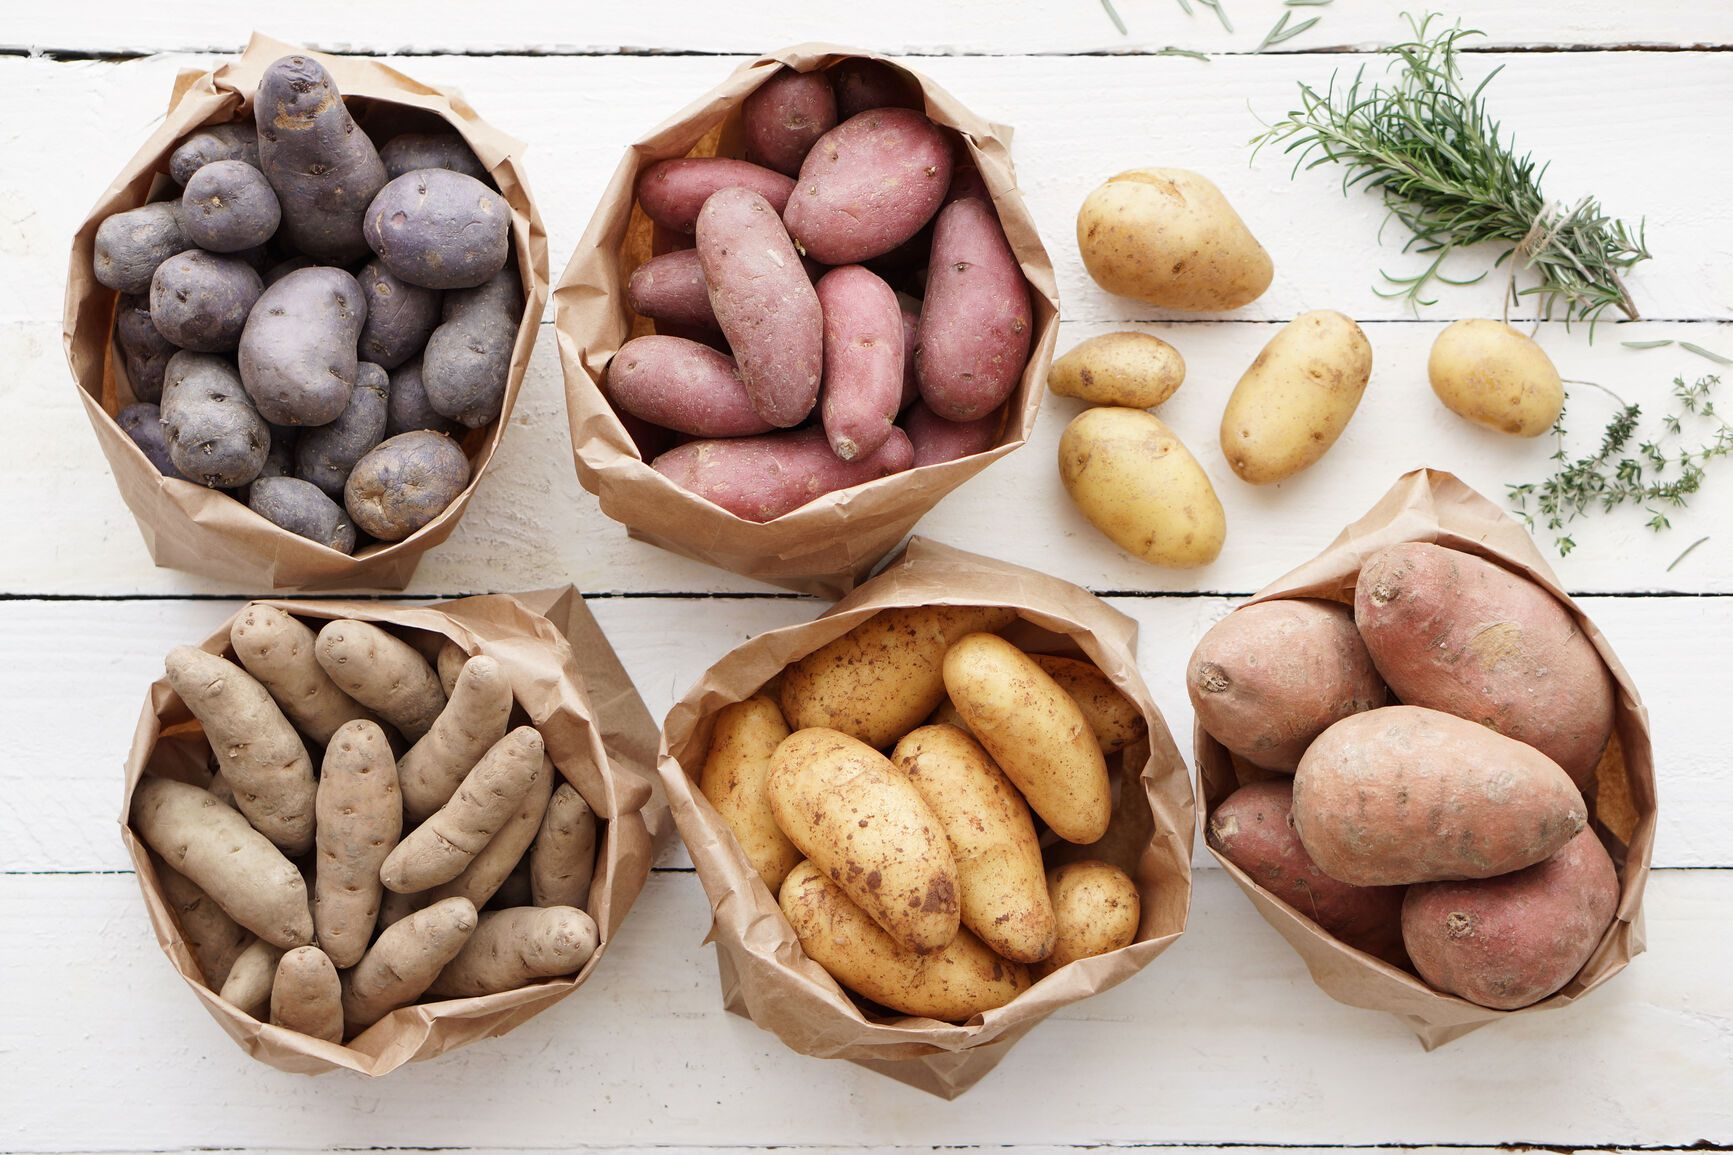 A Definitive Guide to 10 Types of Potatoes